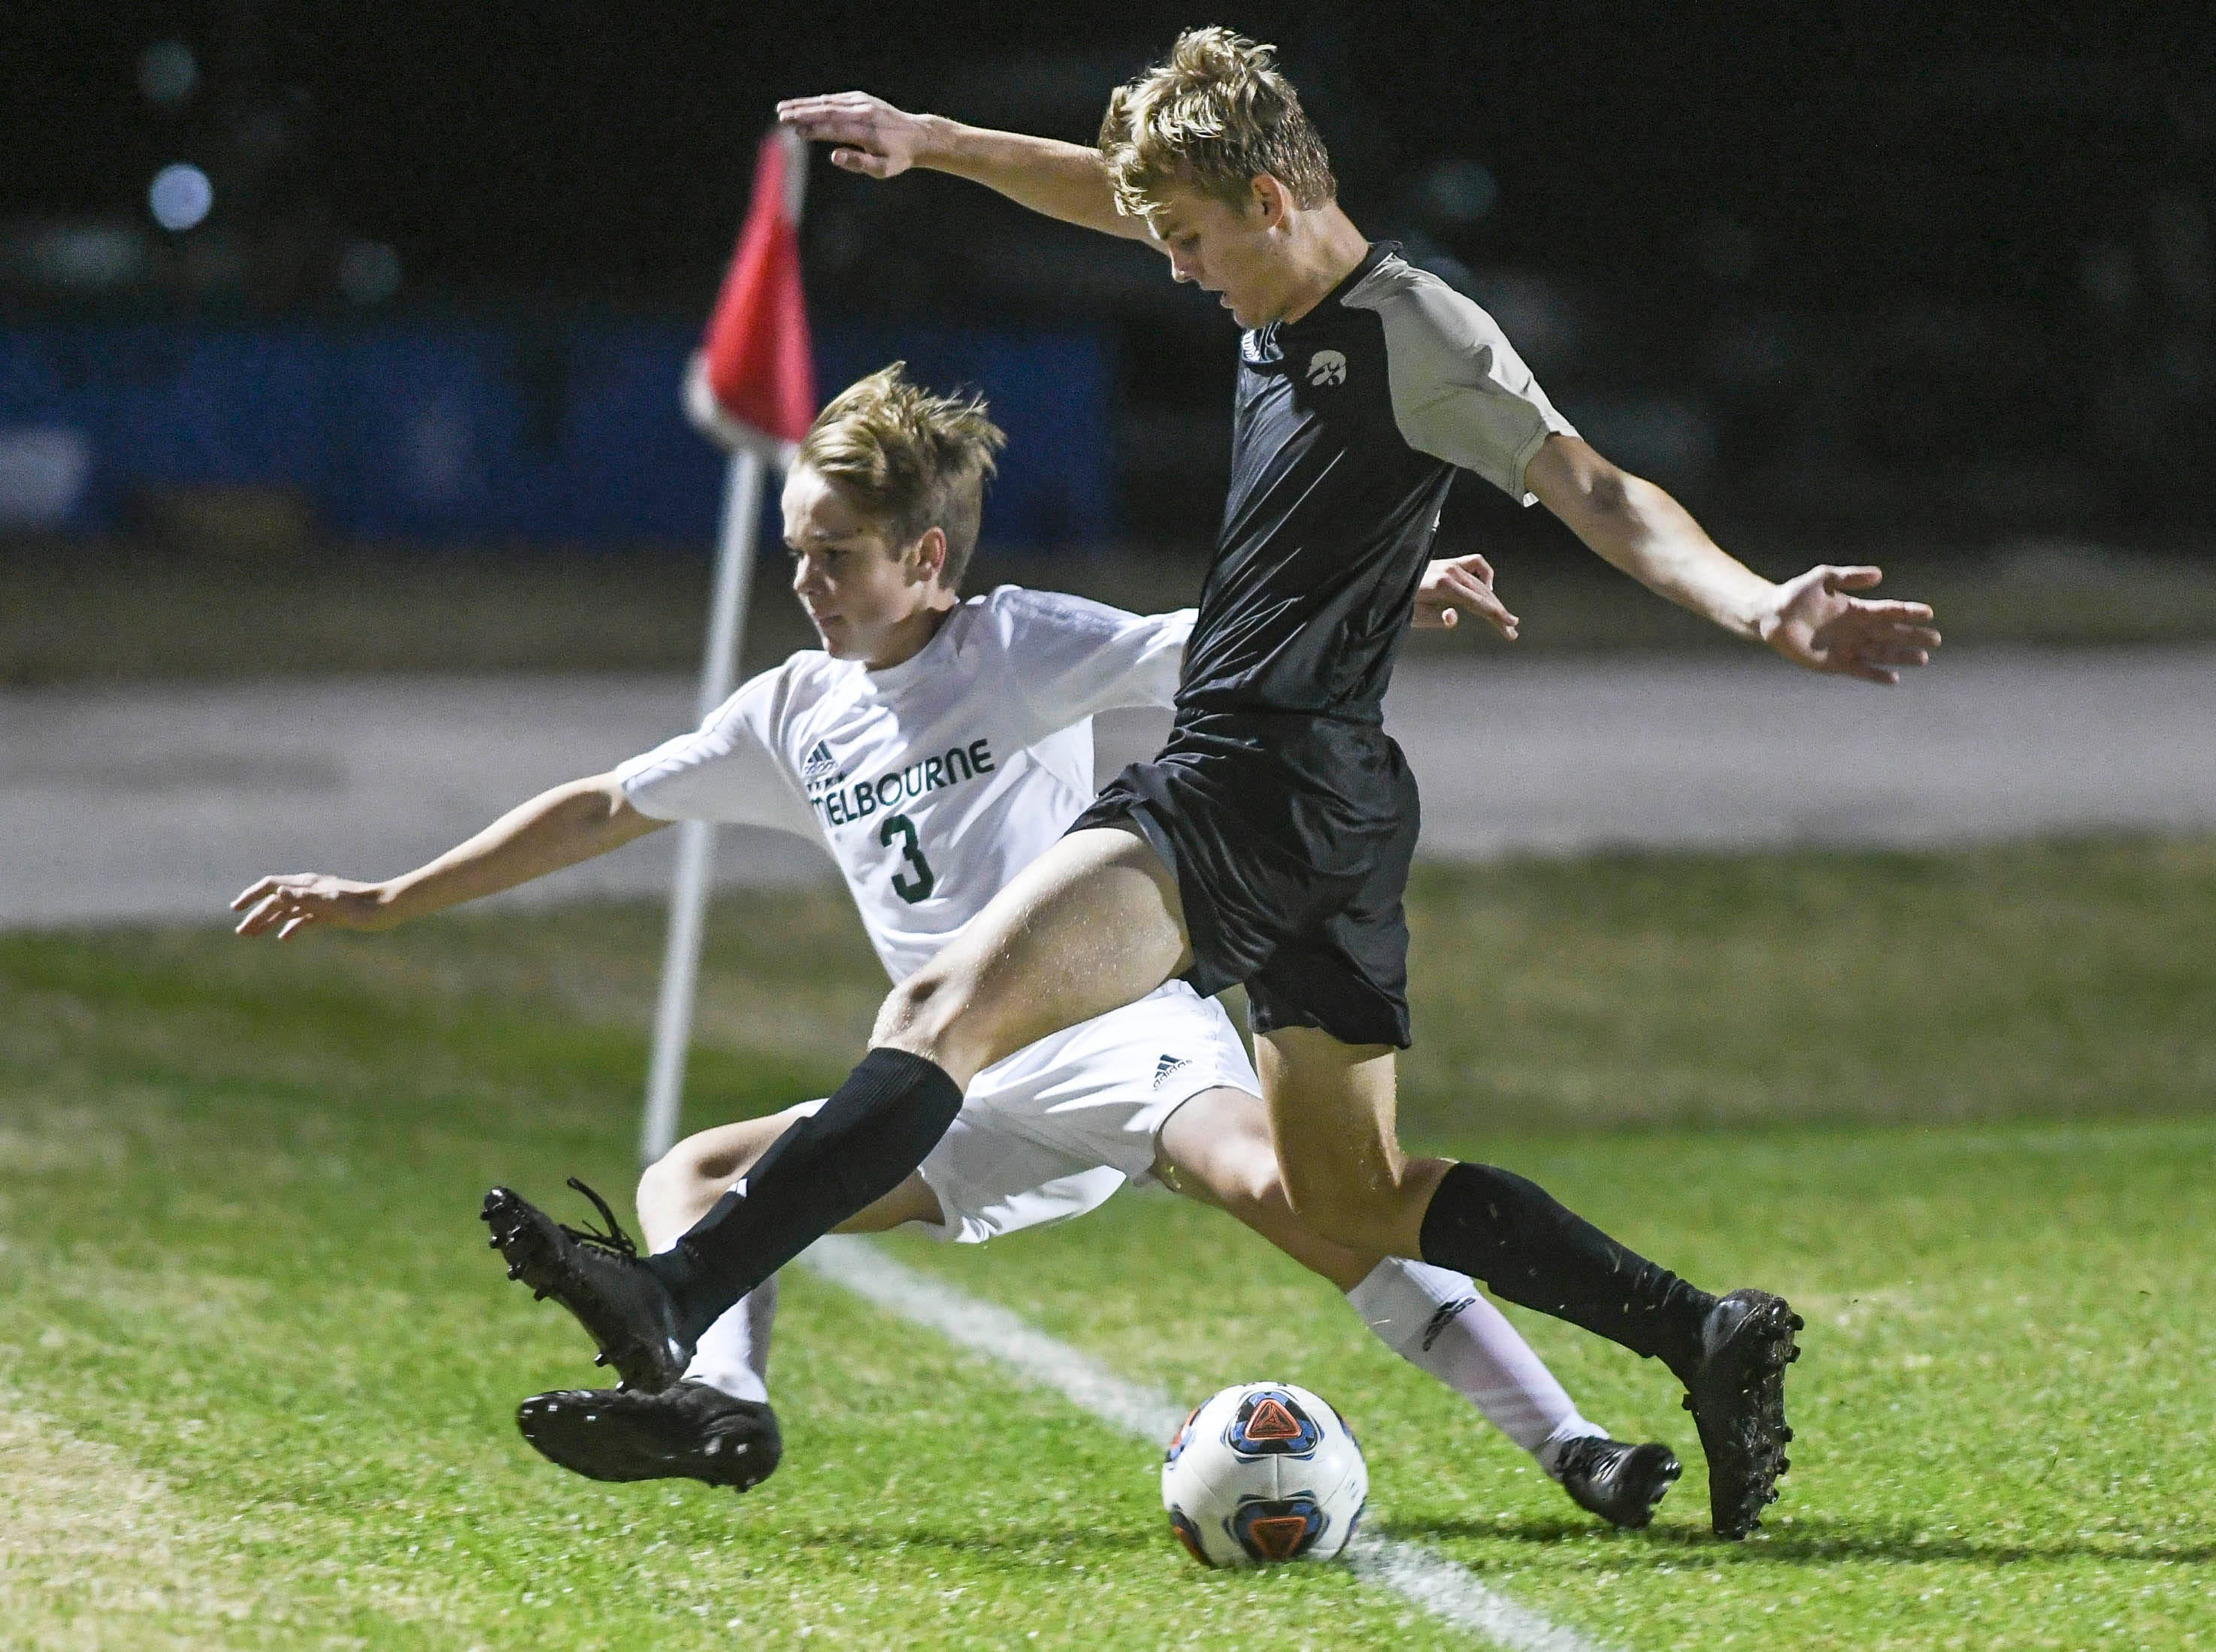 Melbourne's Luke Russo and Mads Jensen of Viera contend for the ball at the sideline during Friday's game at Viera High.